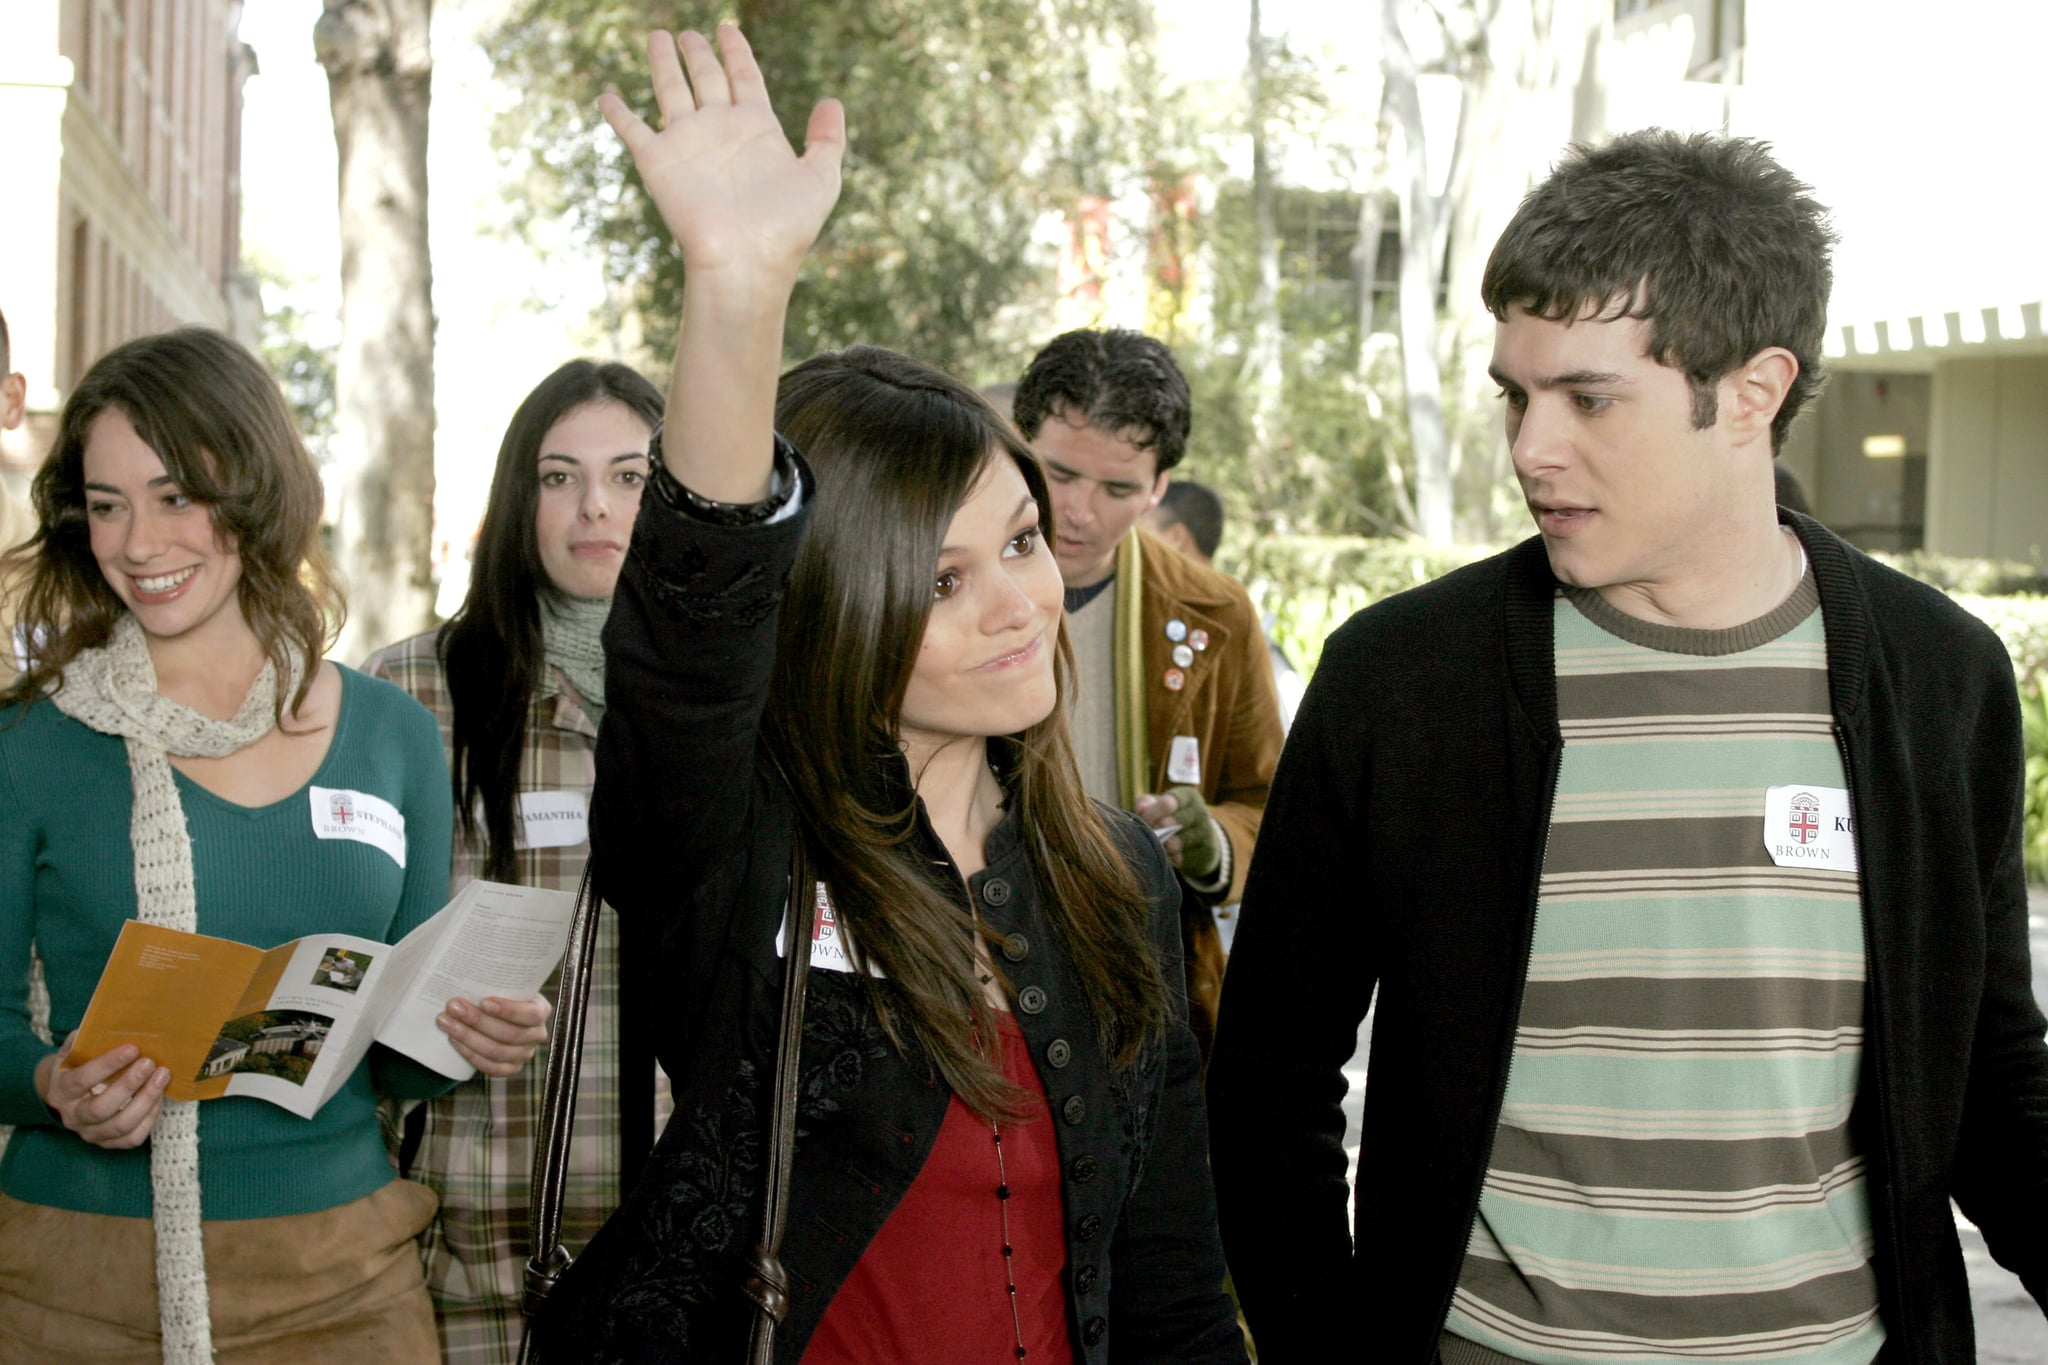 THE O.C., Rachel Bilson, Adam Brody, 'The College Try', (Season 3, aired April 20, 2006), 2003-2007. photo: C. Kaelson /  WB / Courtesy: Everett Collection